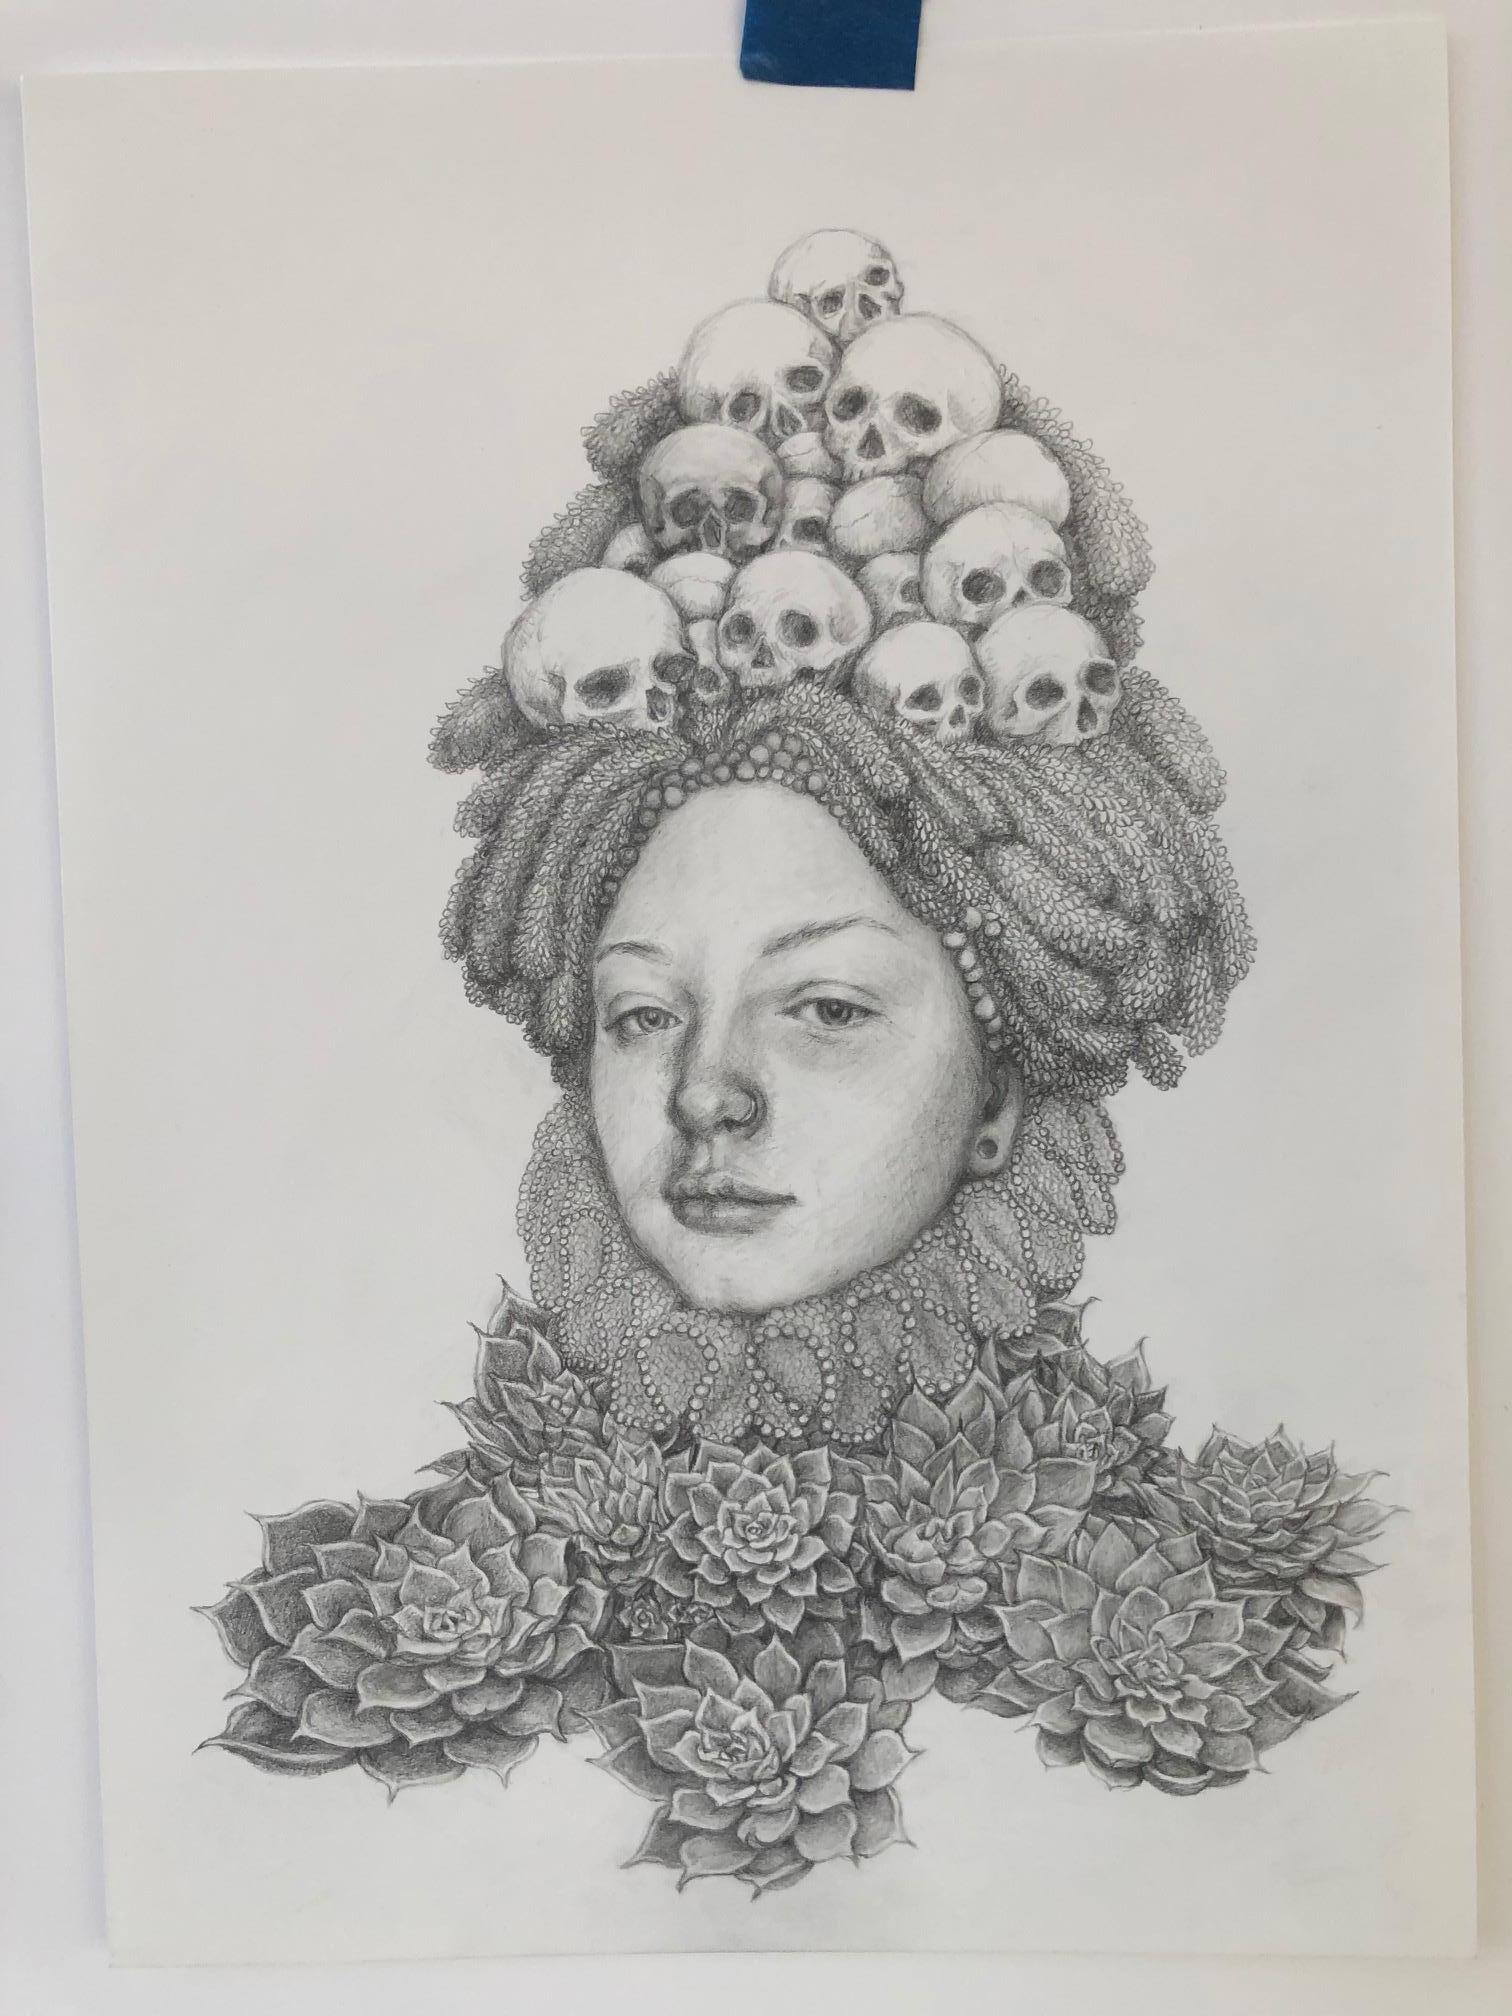 Chikako Okada Infanta Suculentas Graphite Pencil Drawing Woman With Skulls And Succulents For Sale At 1stdibs